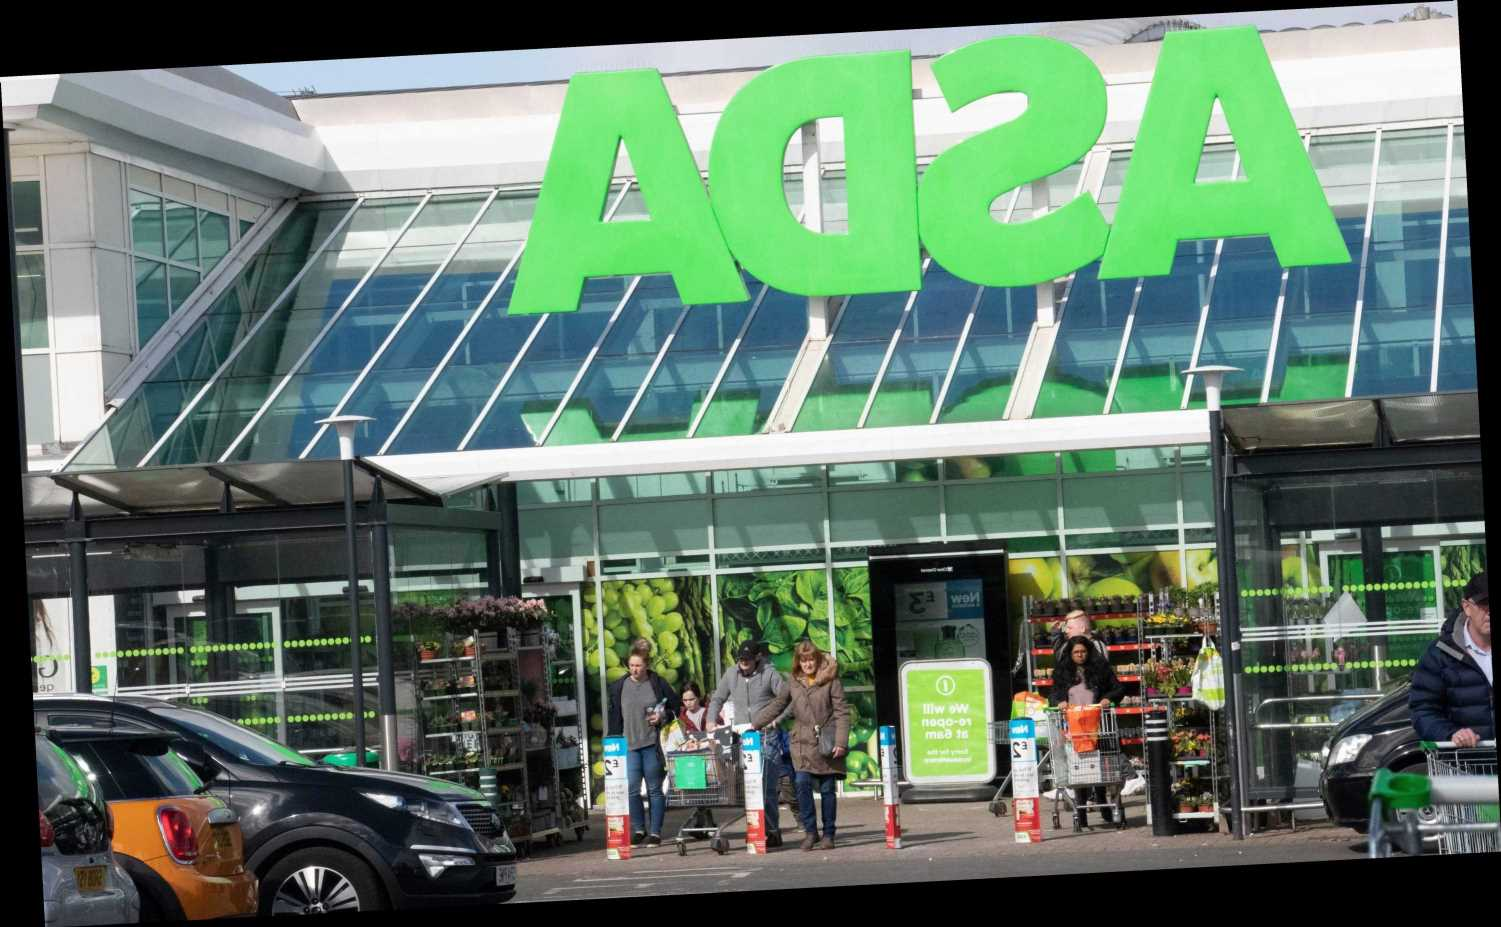 Asda opening times 2021: Shop hours and online delivery advice – The Sun